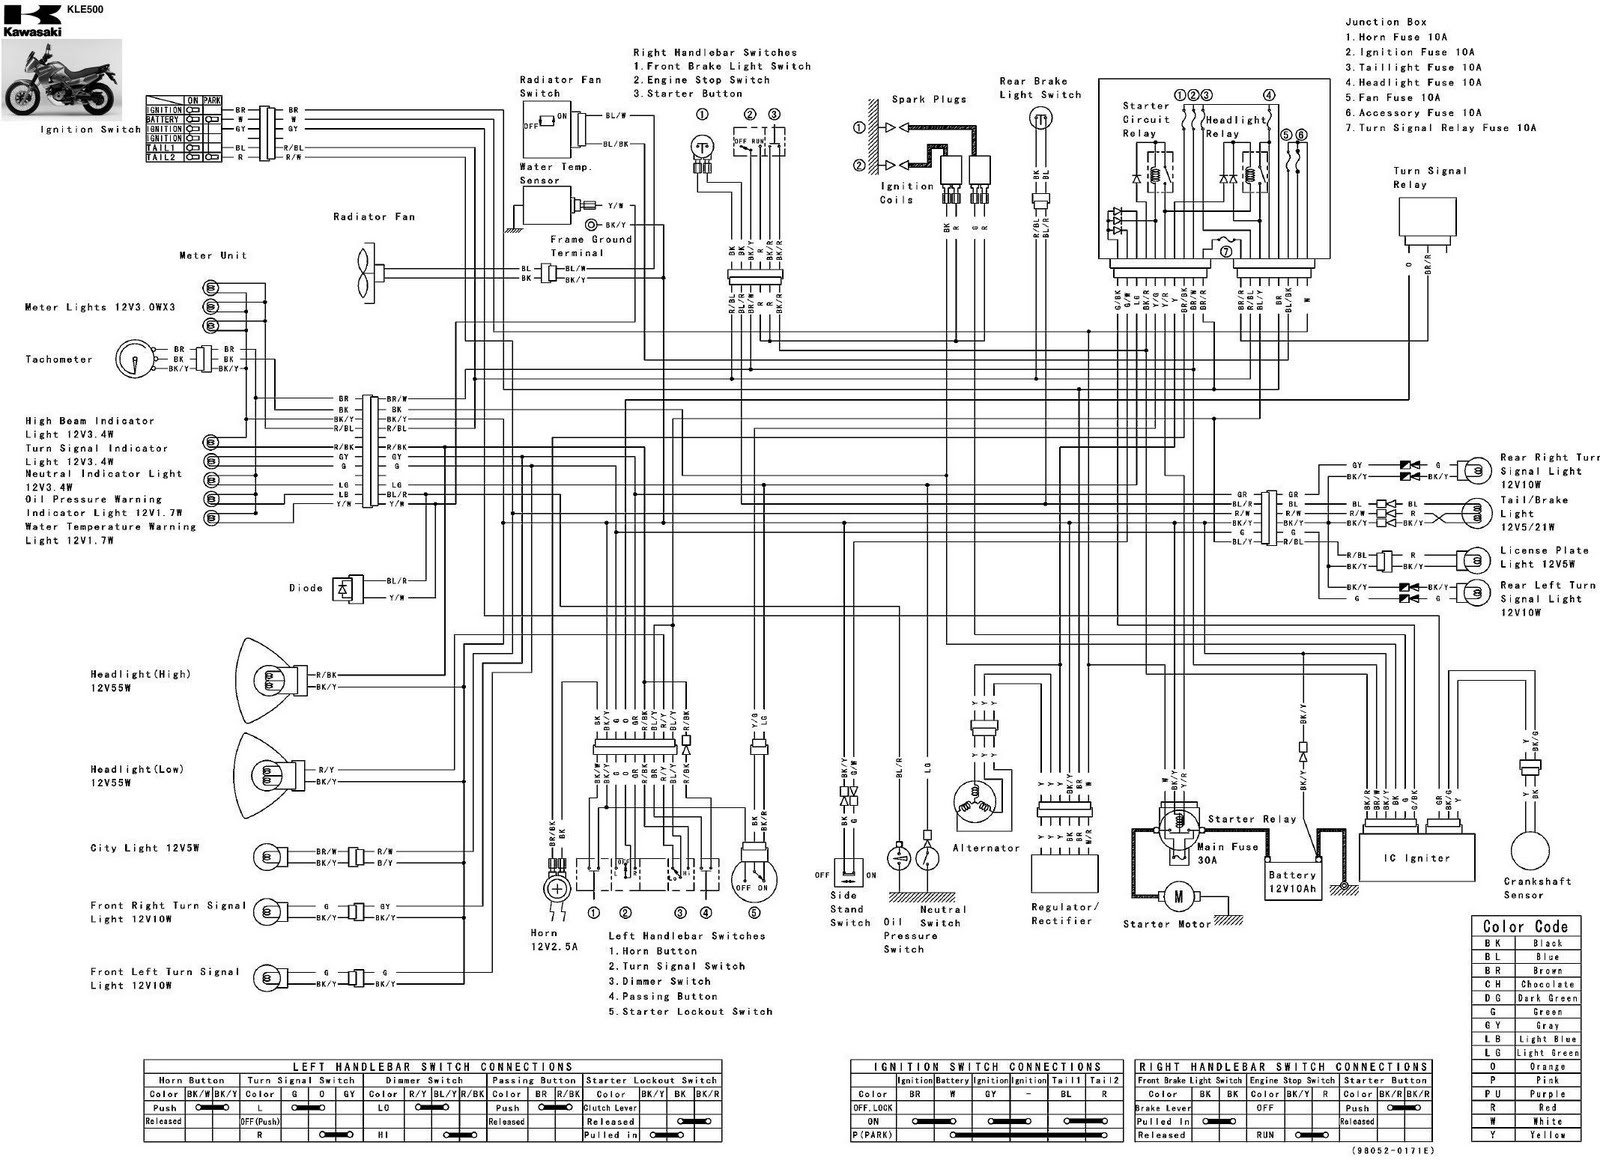 wiring diagram v strom series and parallel circuits diagrams wiring diagram elsalvadorla. Black Bedroom Furniture Sets. Home Design Ideas